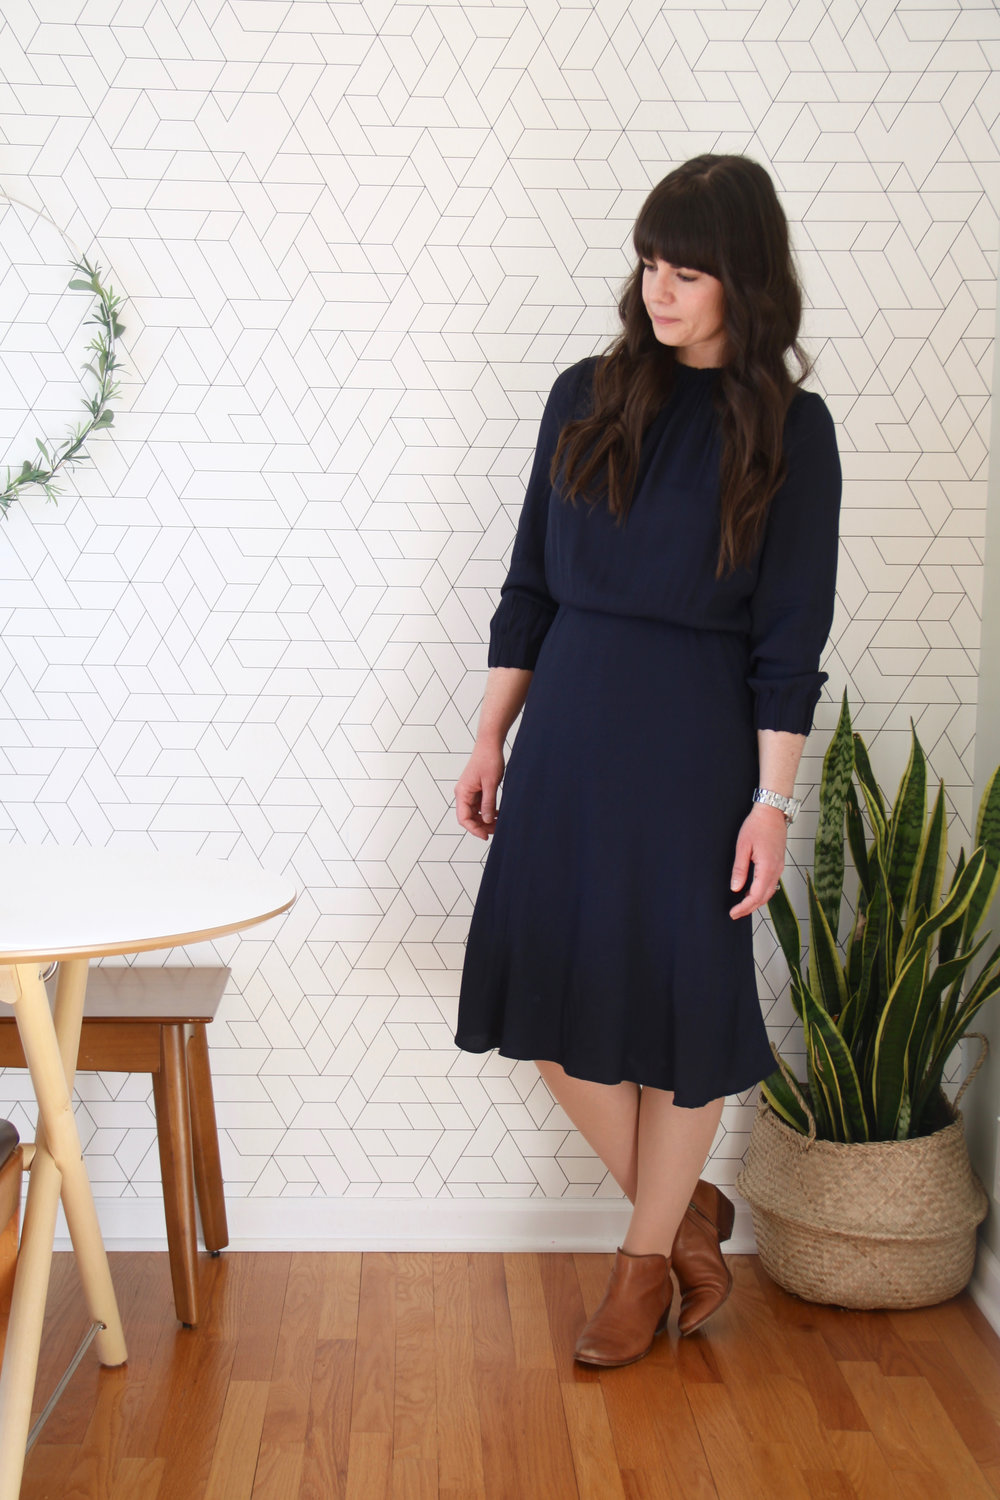 Spring 10x10 Capsule Wardrobe Challenge Navy Dress